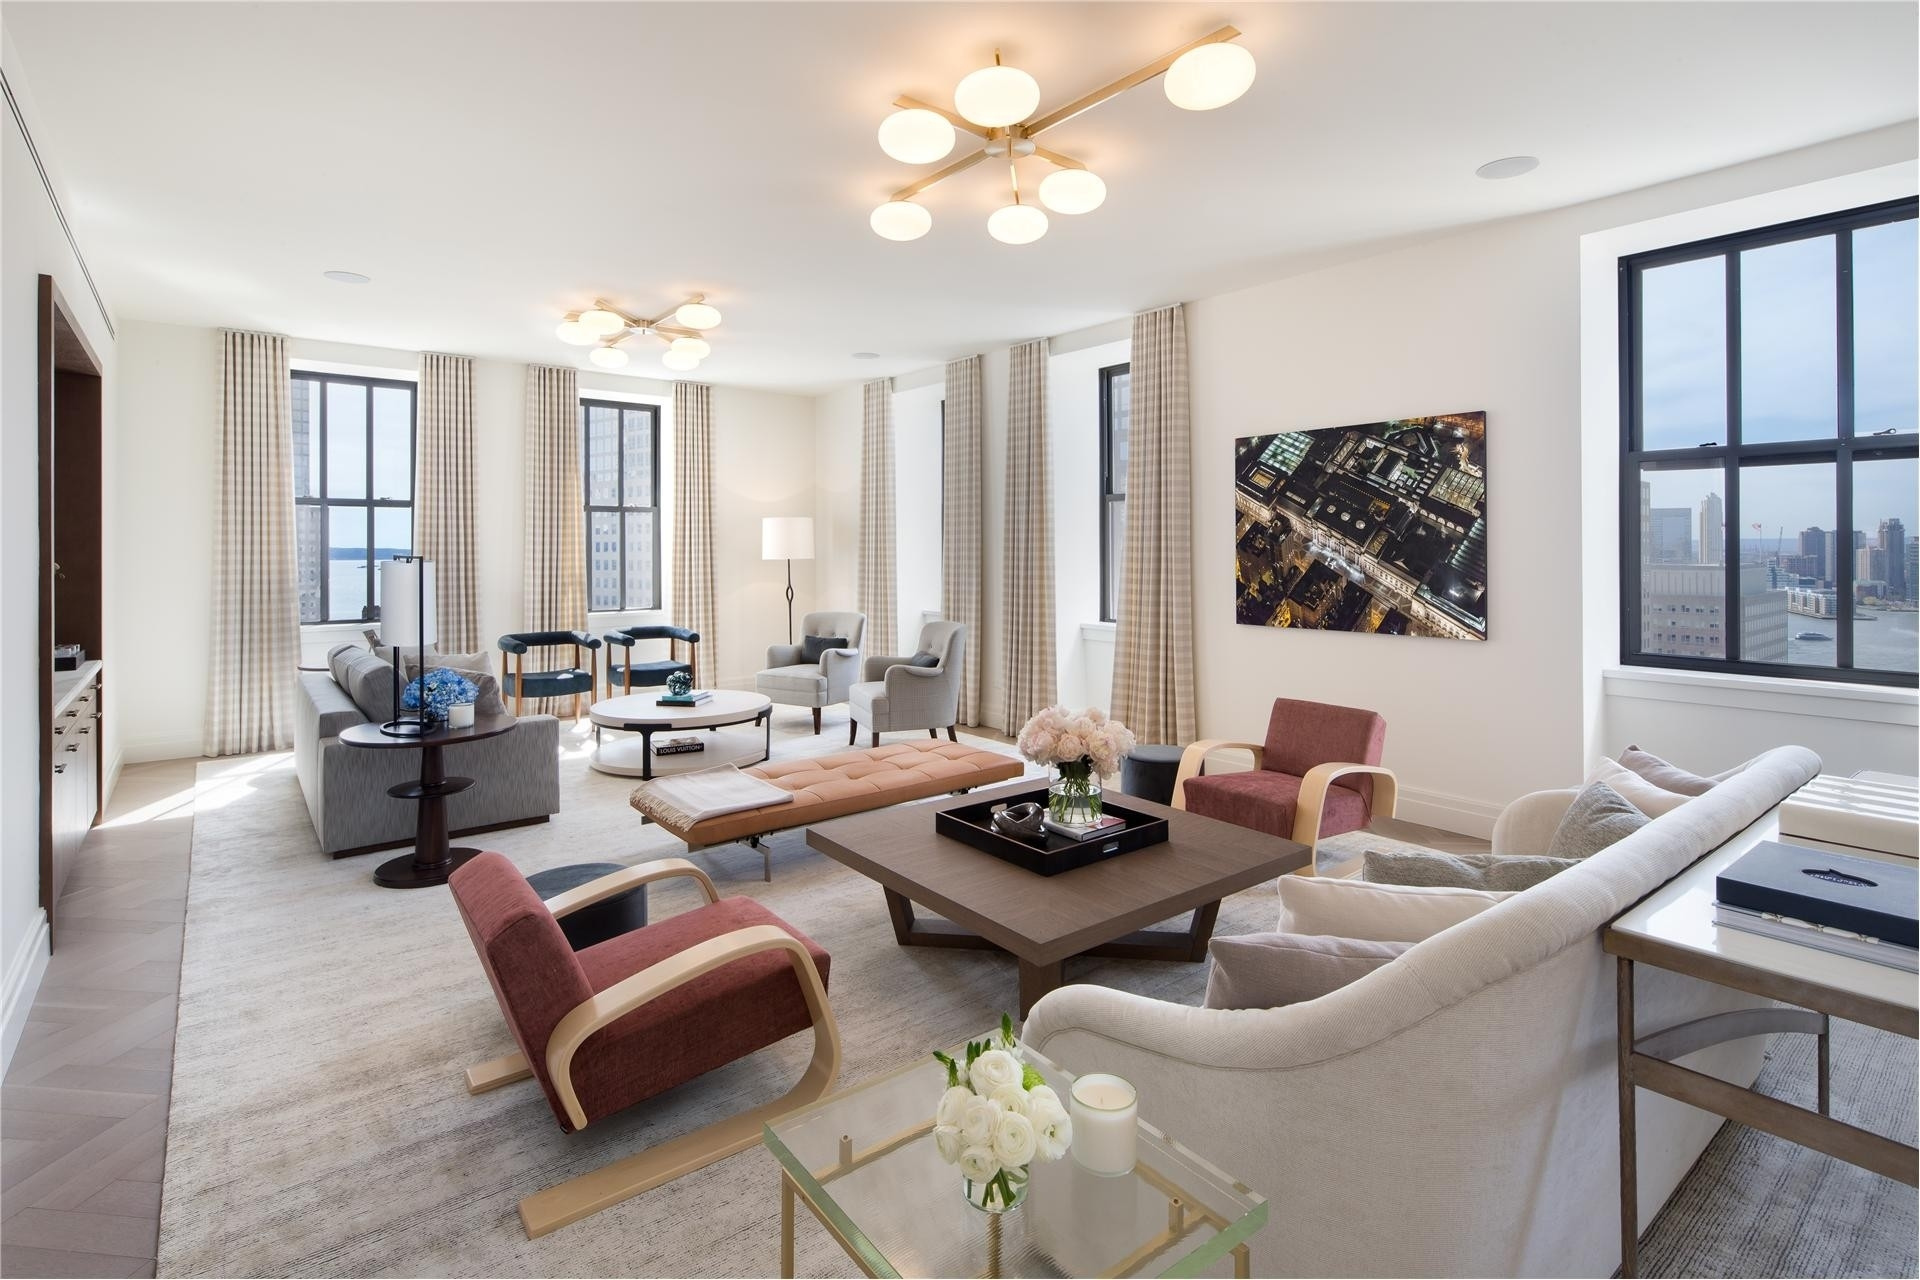 Condominium at One Hundred Barclay Tribeca, 100 Barclay St, 16H Financial District (Wall Street), New York